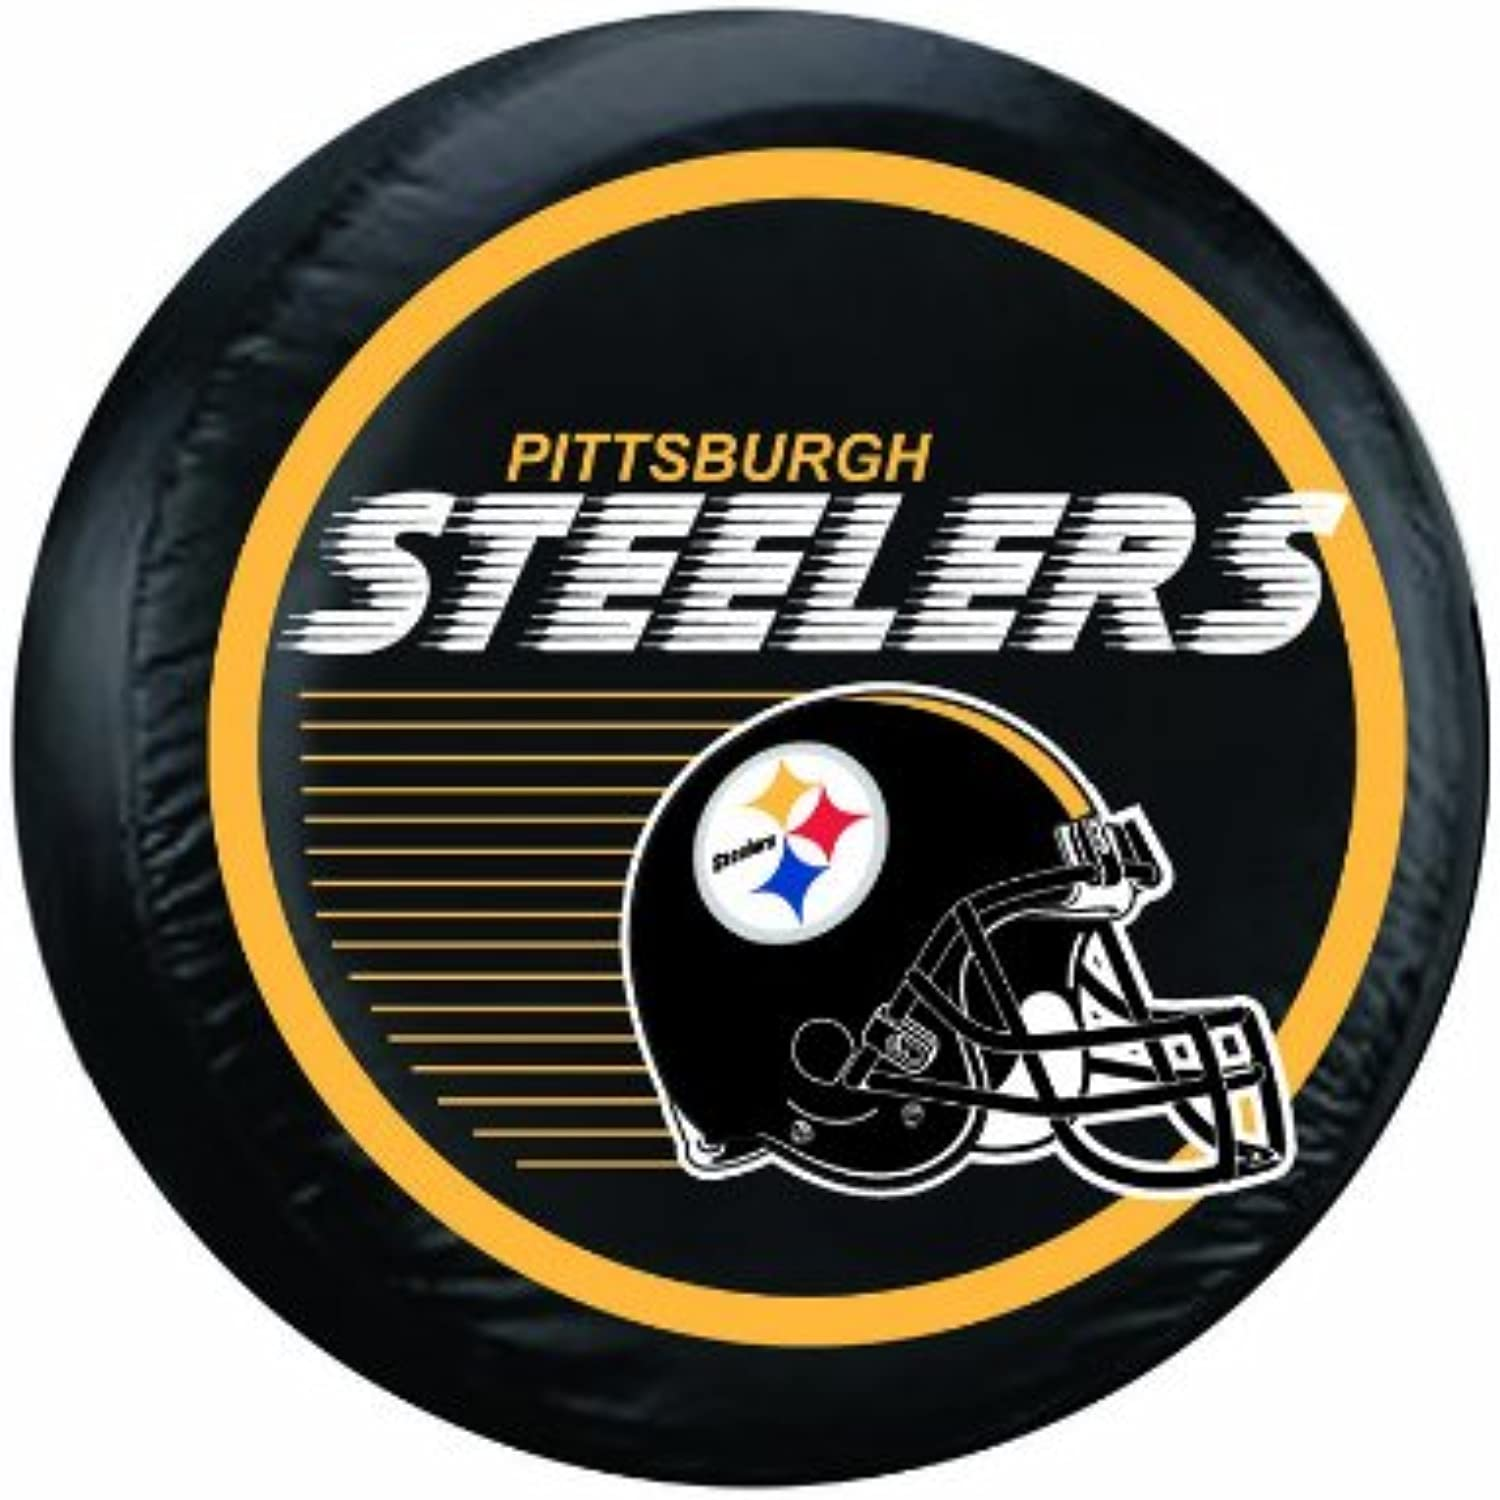 NFL Pittsburgh Steelers Large Tire Cover, Black